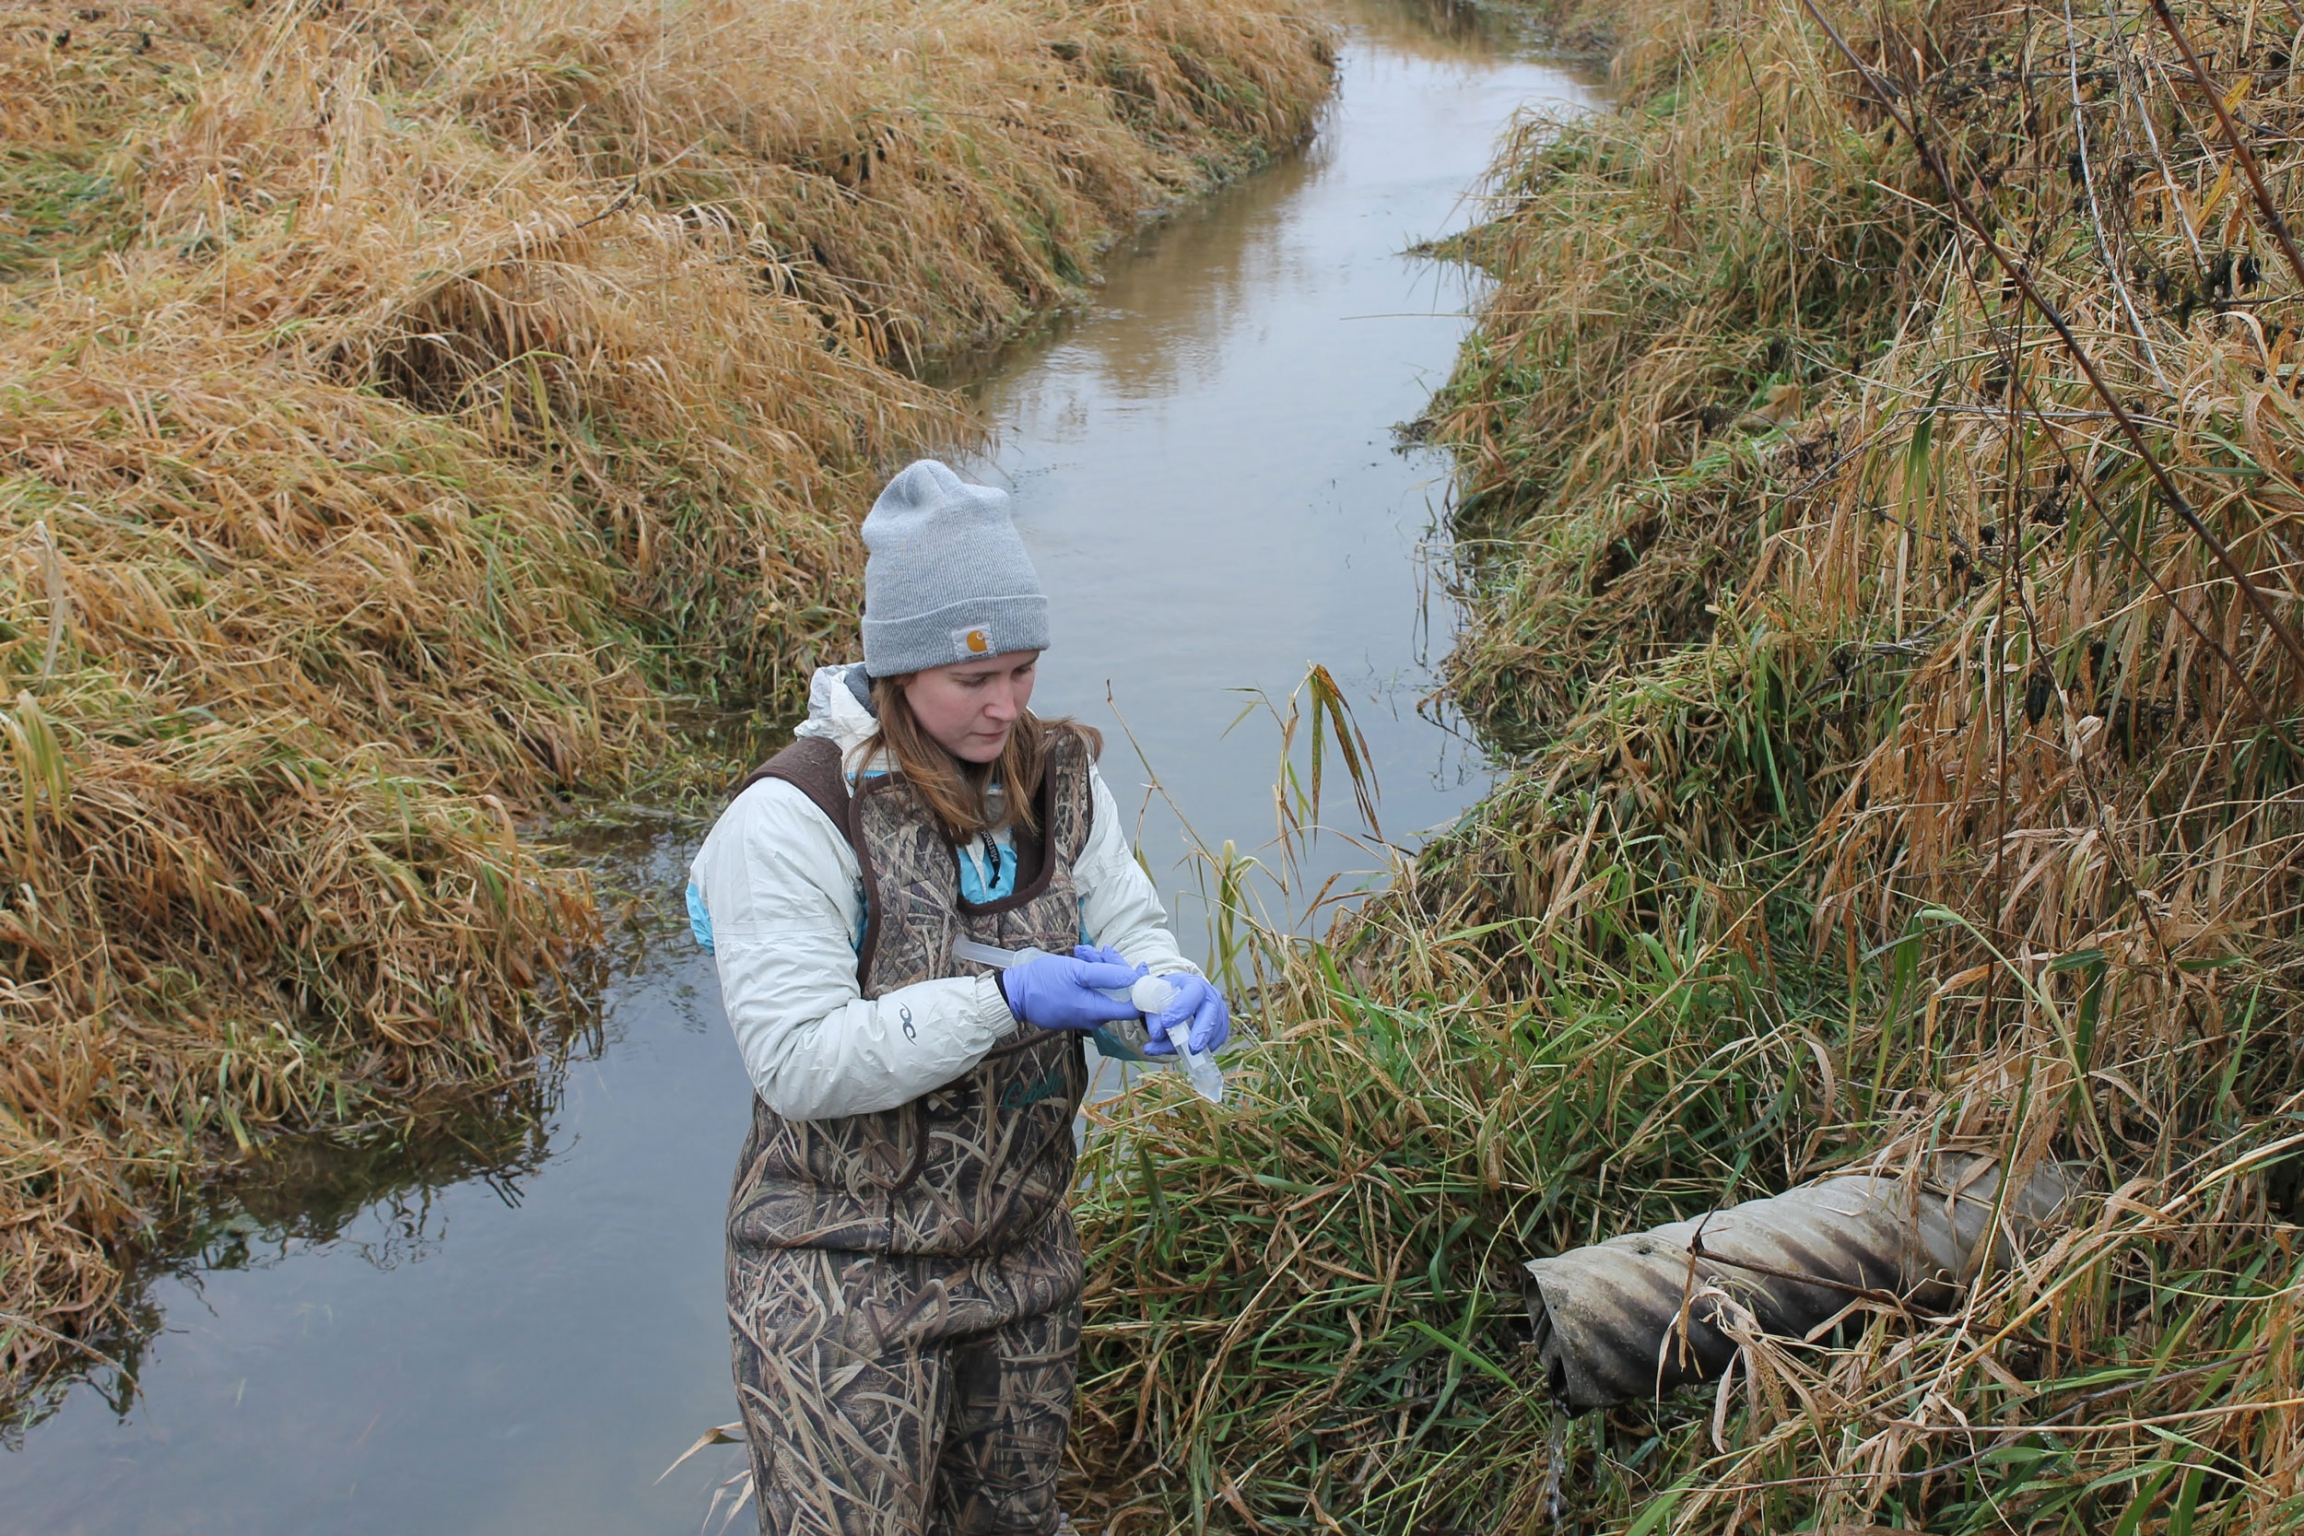 A woman is shown standing in a watery ditch and wearing camoflauge overalls.